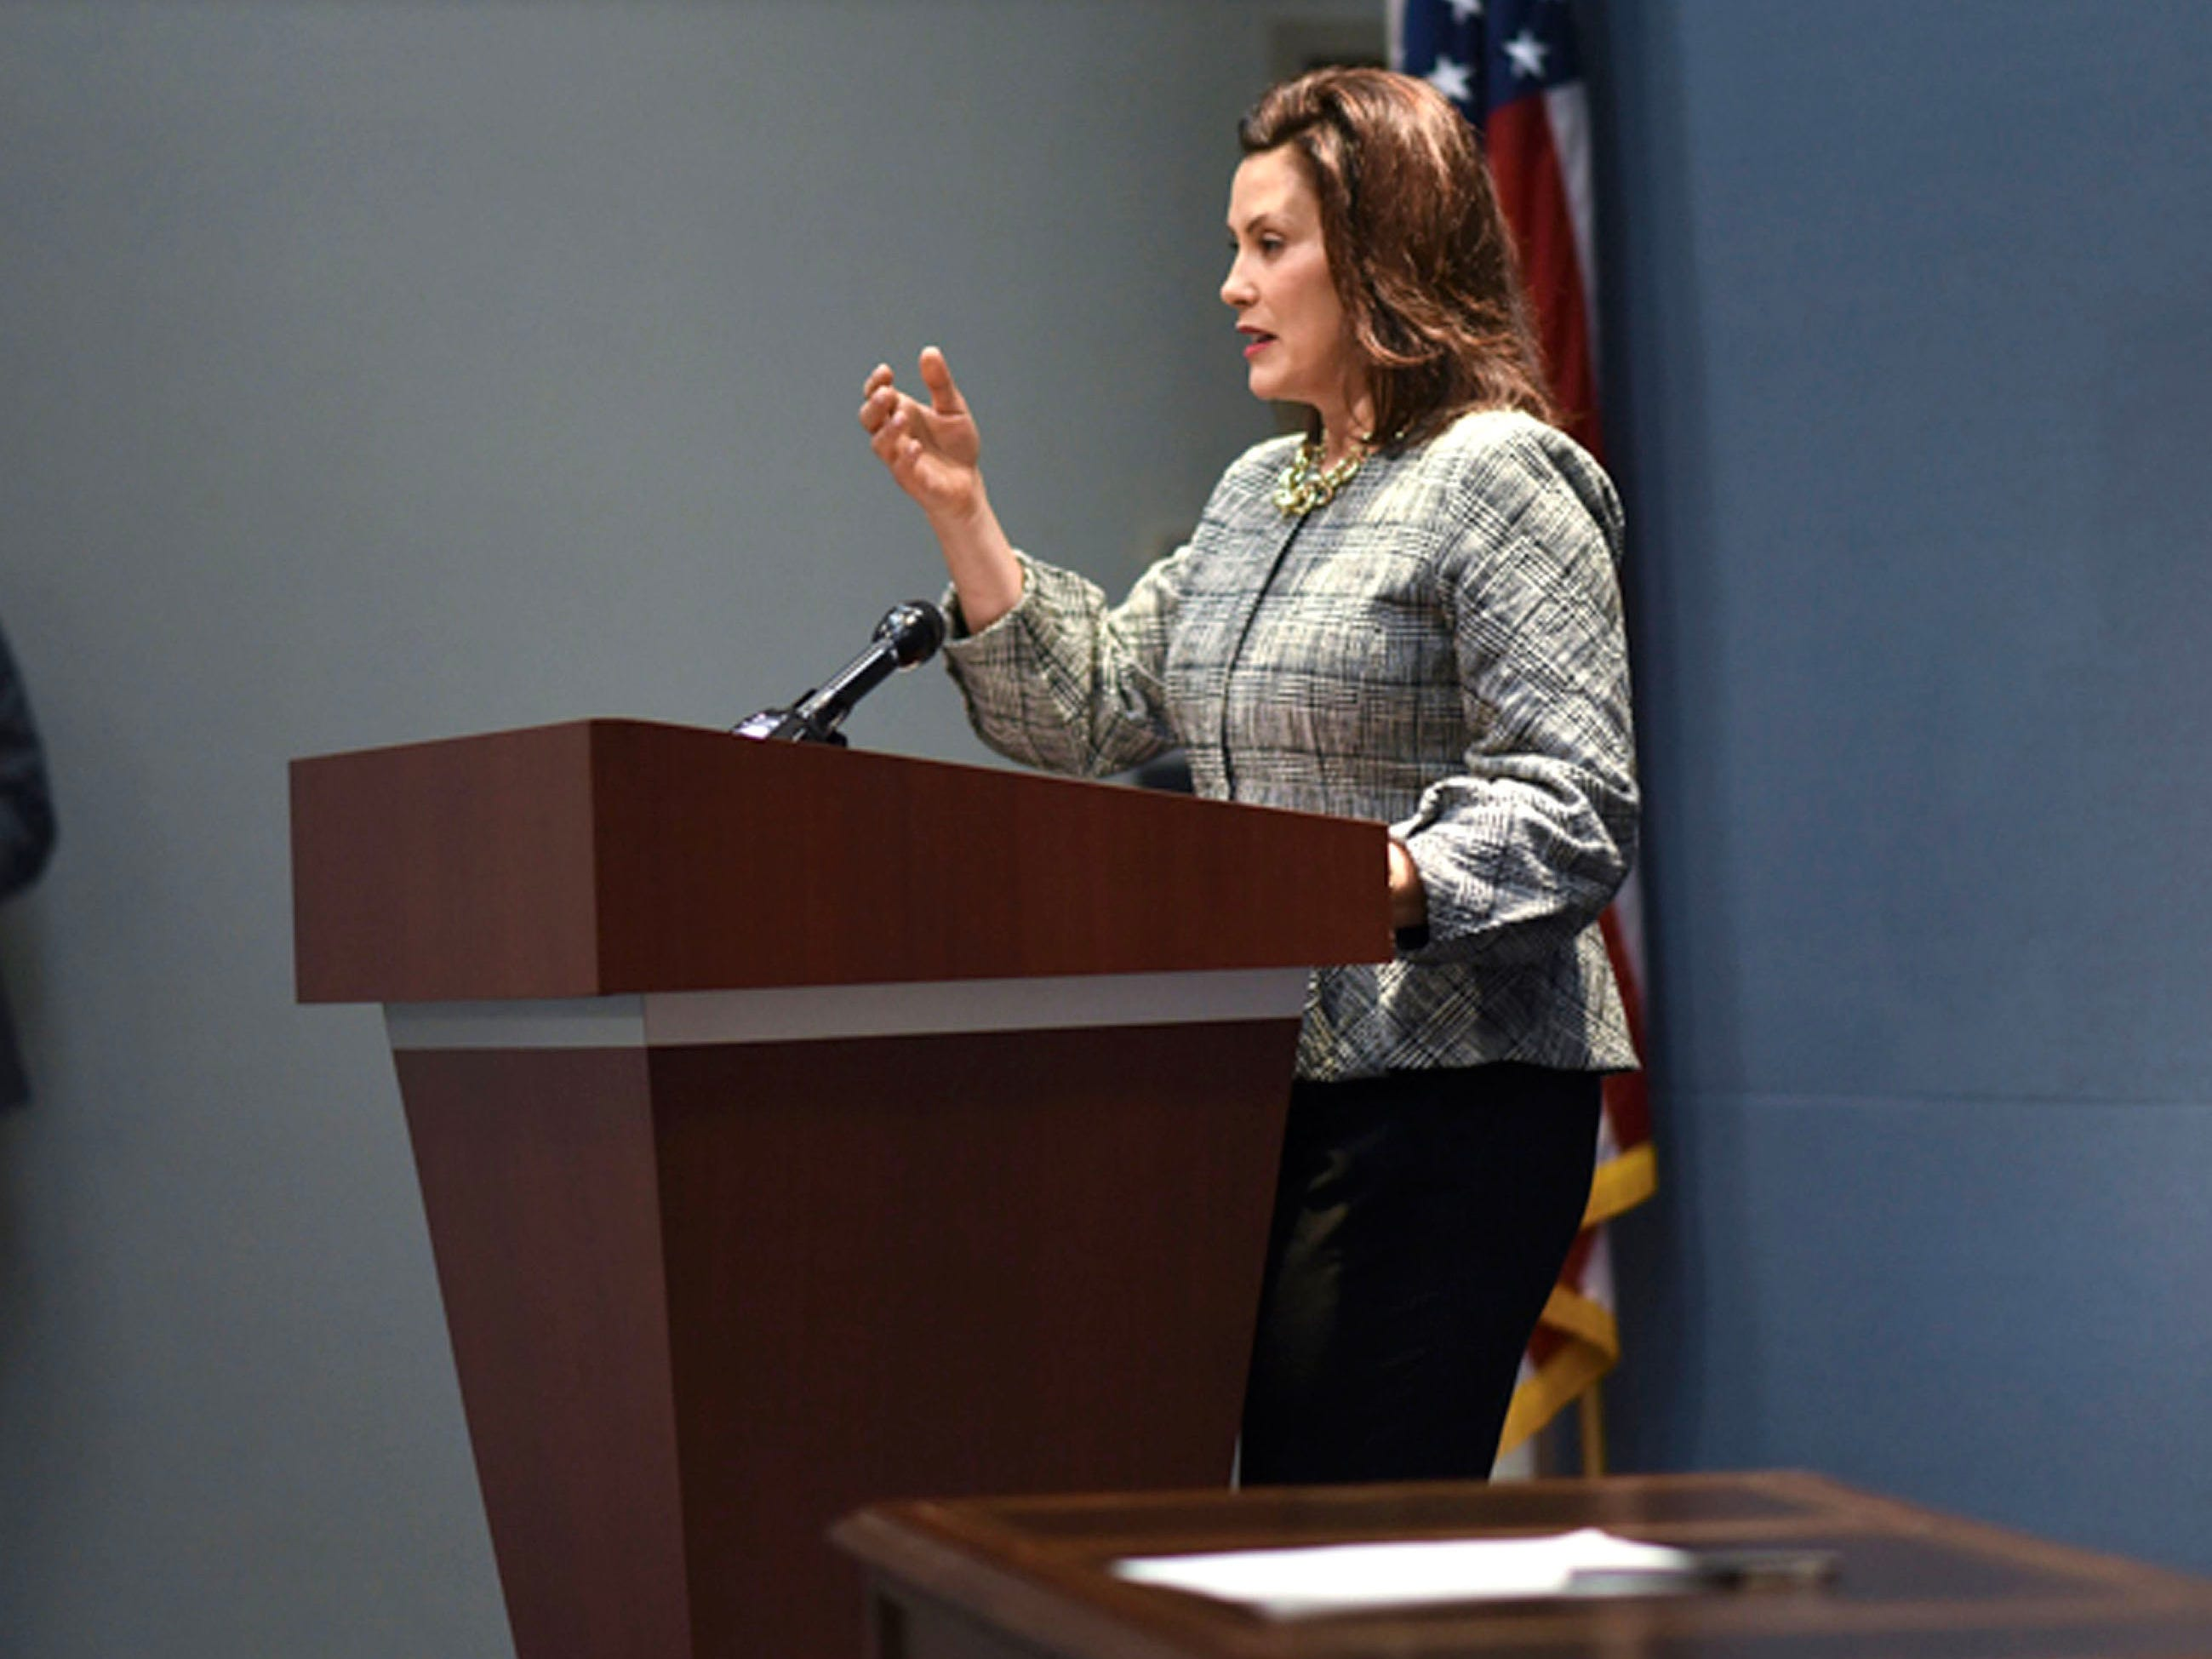 Whitmer signs directive strengthening protections for LGBTQ community